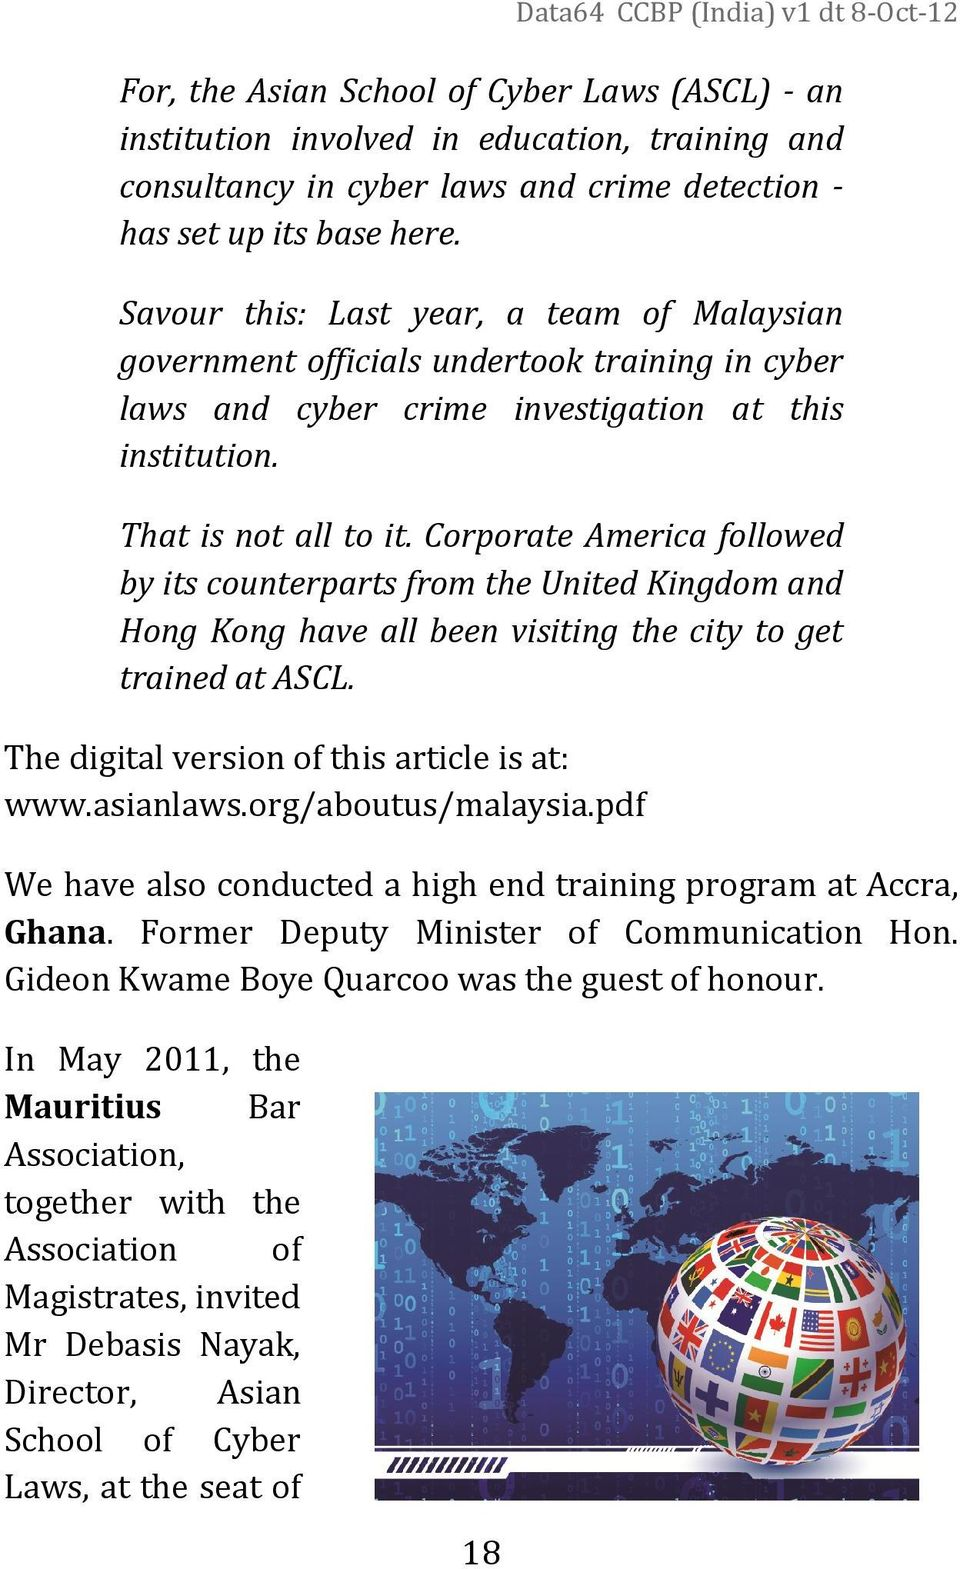 Corporate America followed by its counterparts from the United Kingdom and Hong Kong have all been visiting the city to get trained at ASCL. The digital version of this article is at: www.asianlaws.